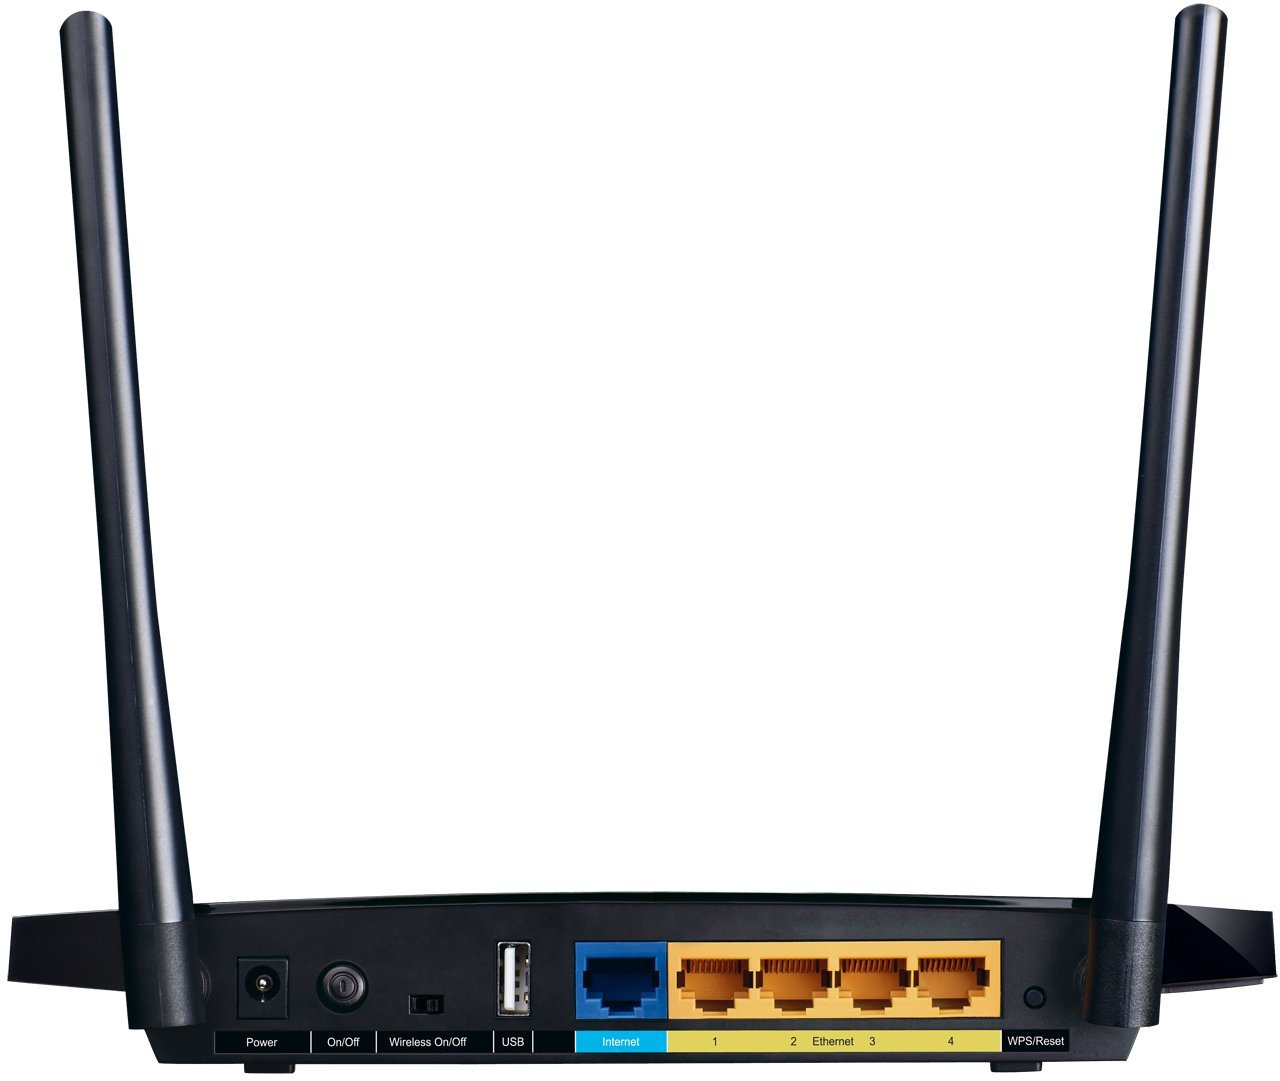 TP-Link N600 Wireless Wi-Fi Dual Band Router (TL-WDR3500